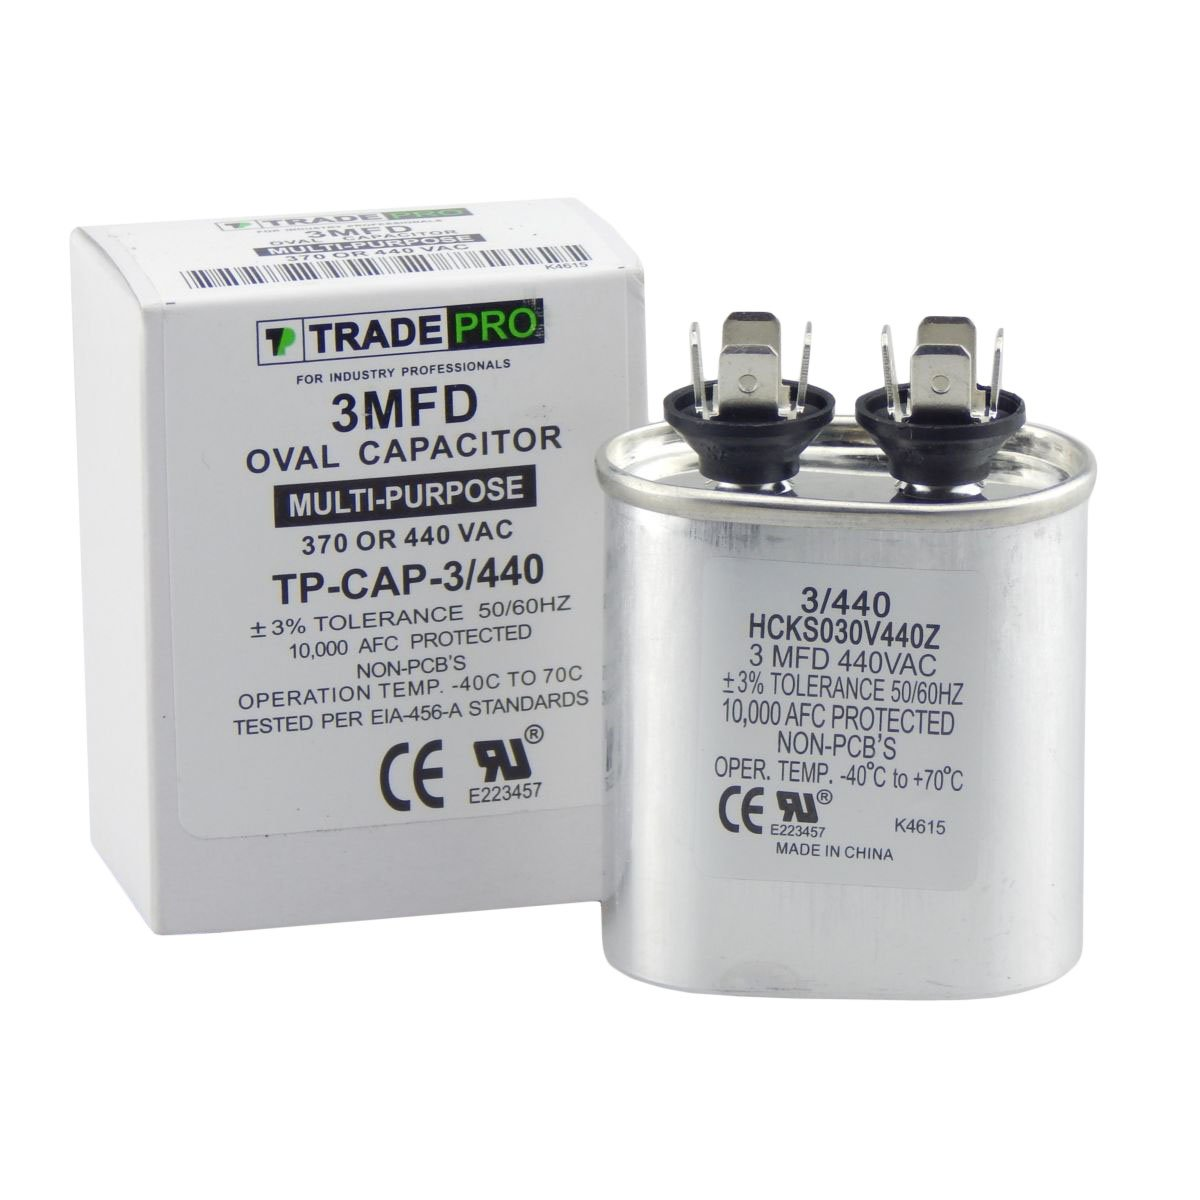 3 mfd Capacitor, Industrial Grade Replacement for Central Air-Conditioners, Heat Pumps, Condenser Fan Motors, and Compressors. Oval Multi-Purpose 370/440 Volt - by Trade Pro